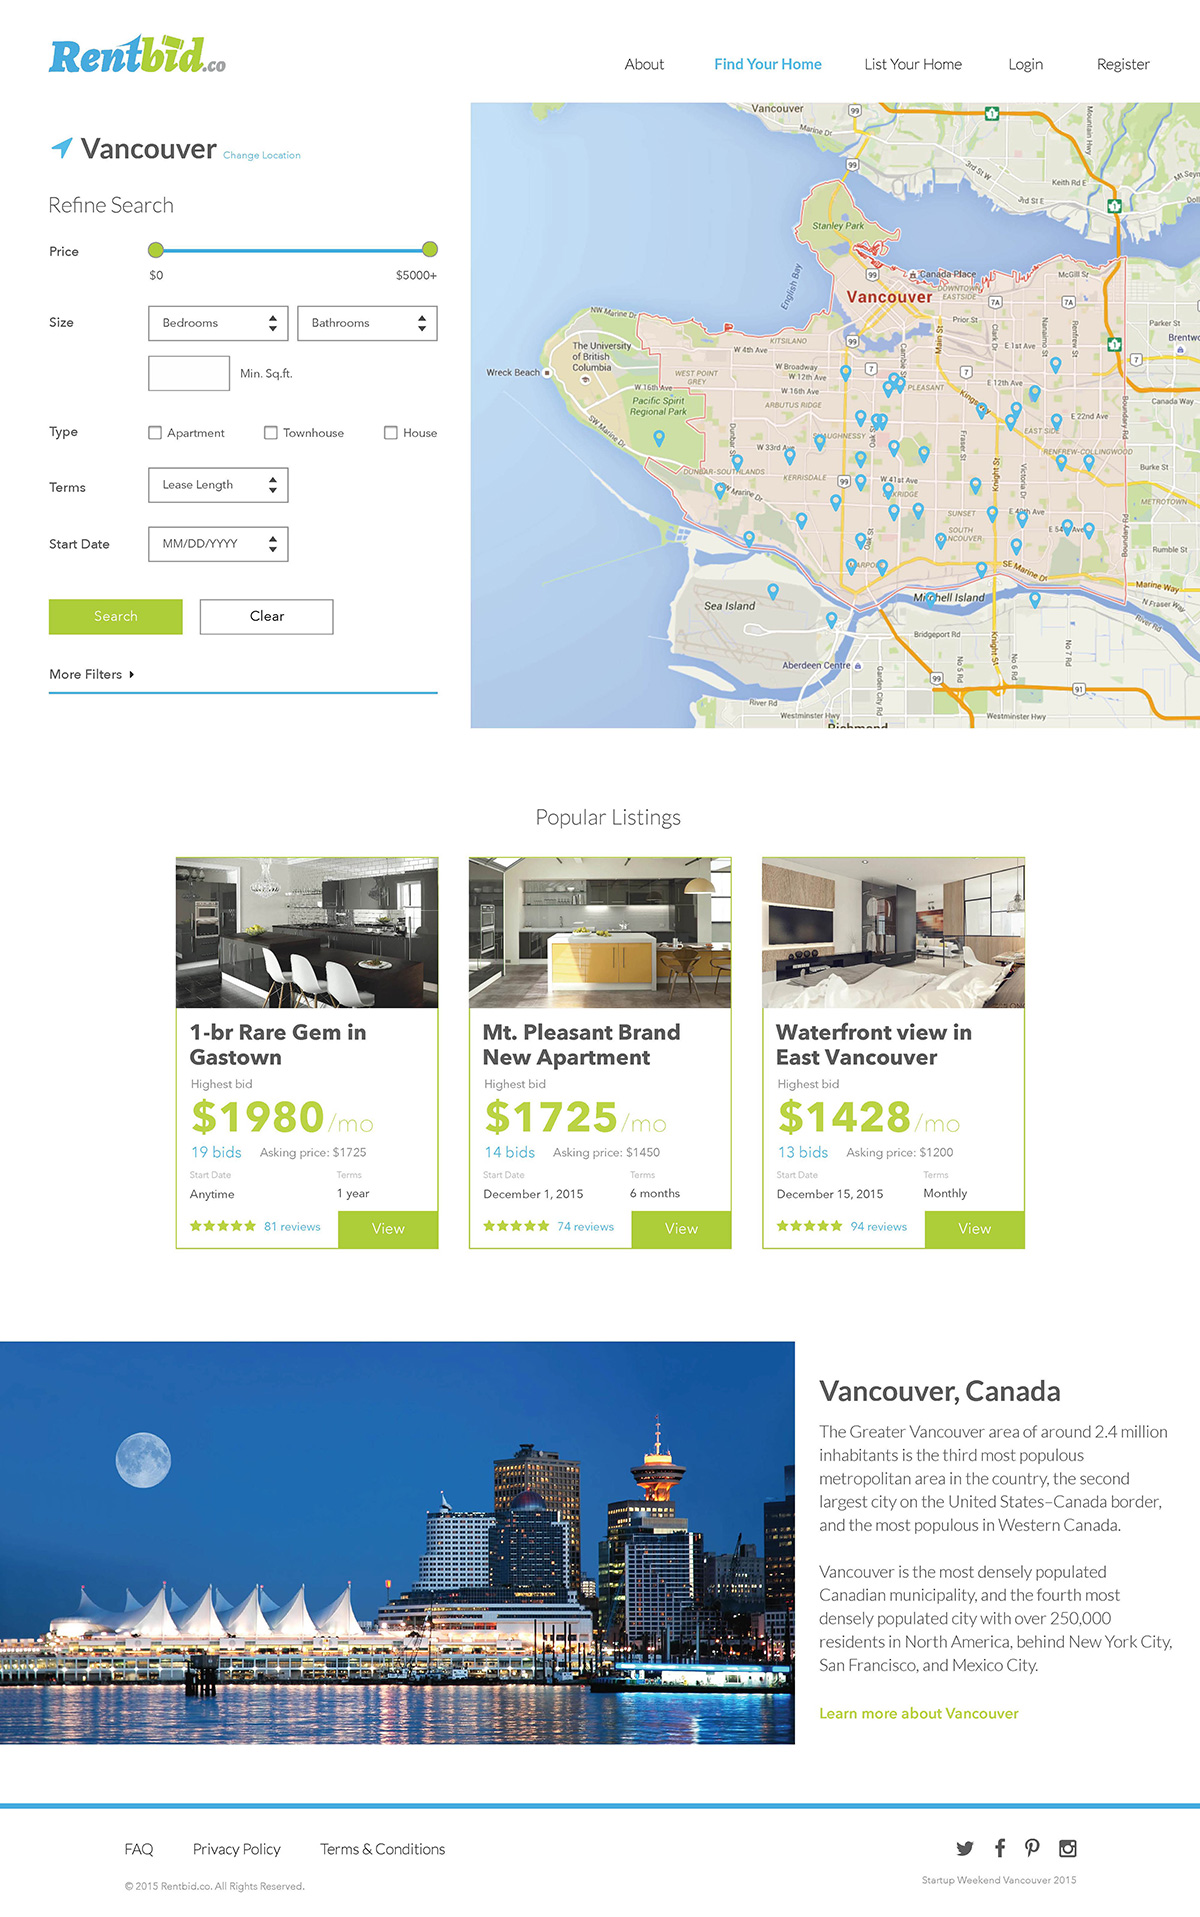 Startup Rentbid UX/UI design project custom search function based on location